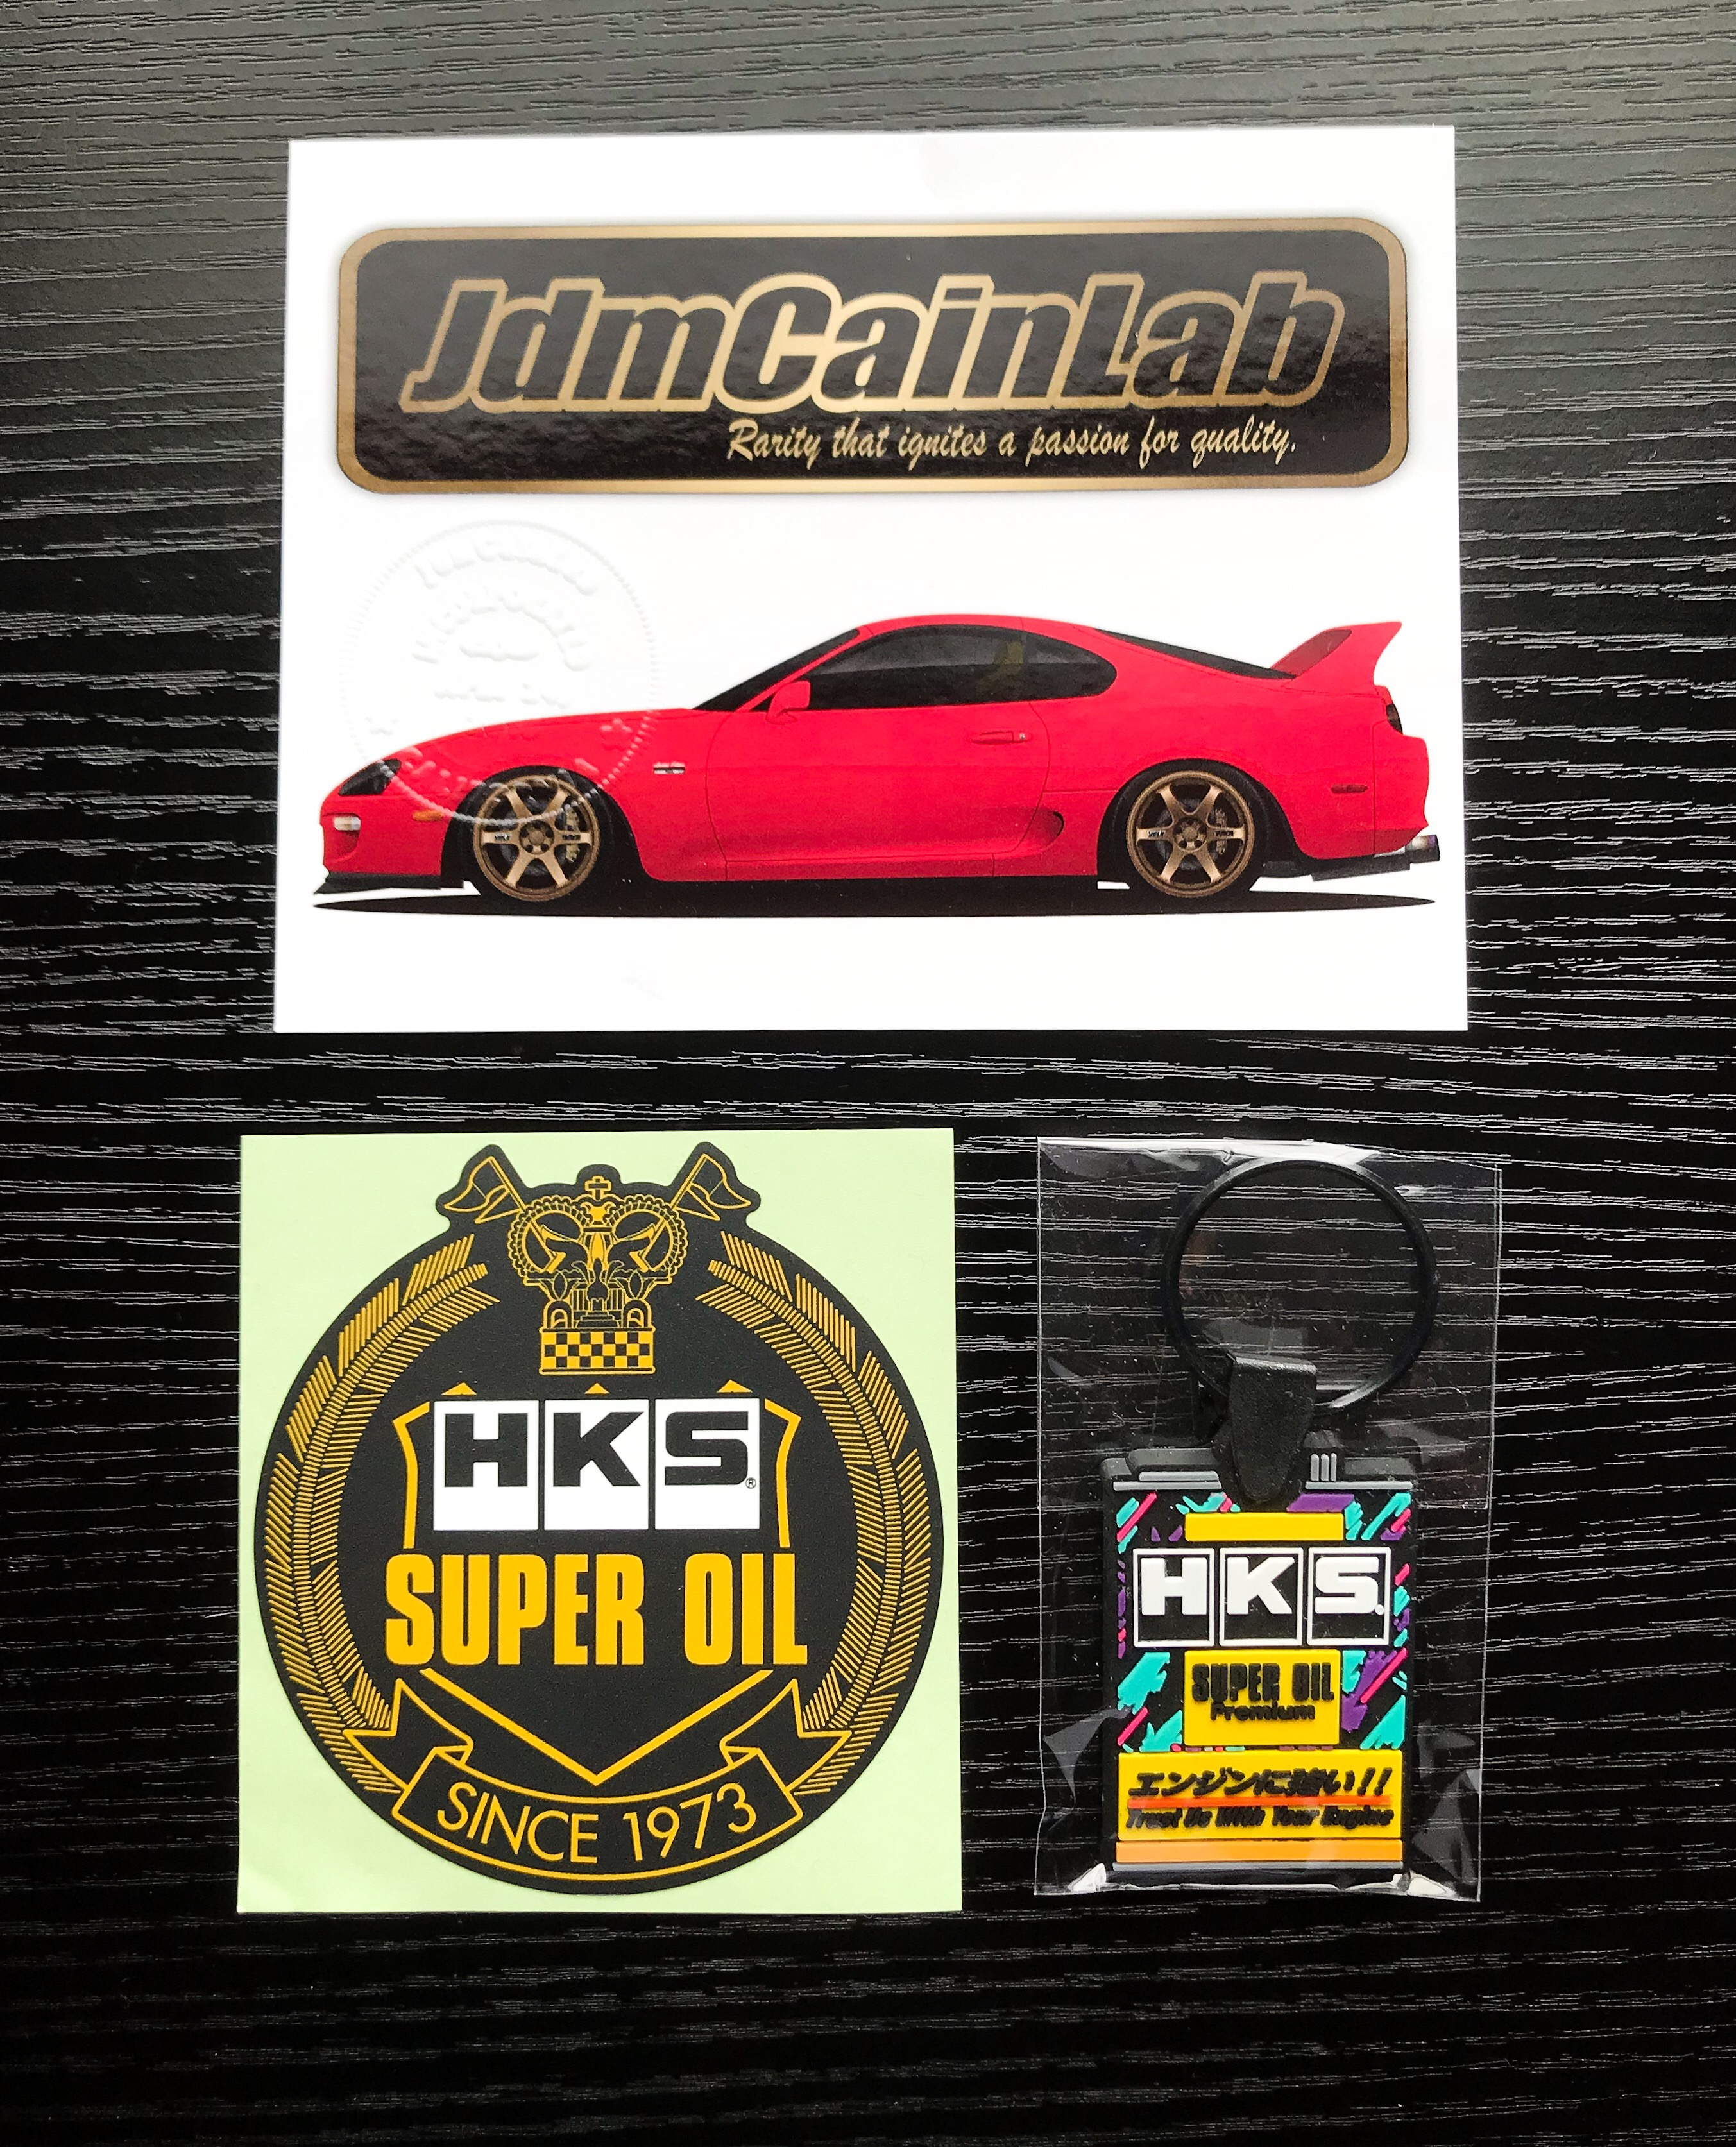 HKS Super Oil Key Chain And Decal Combo